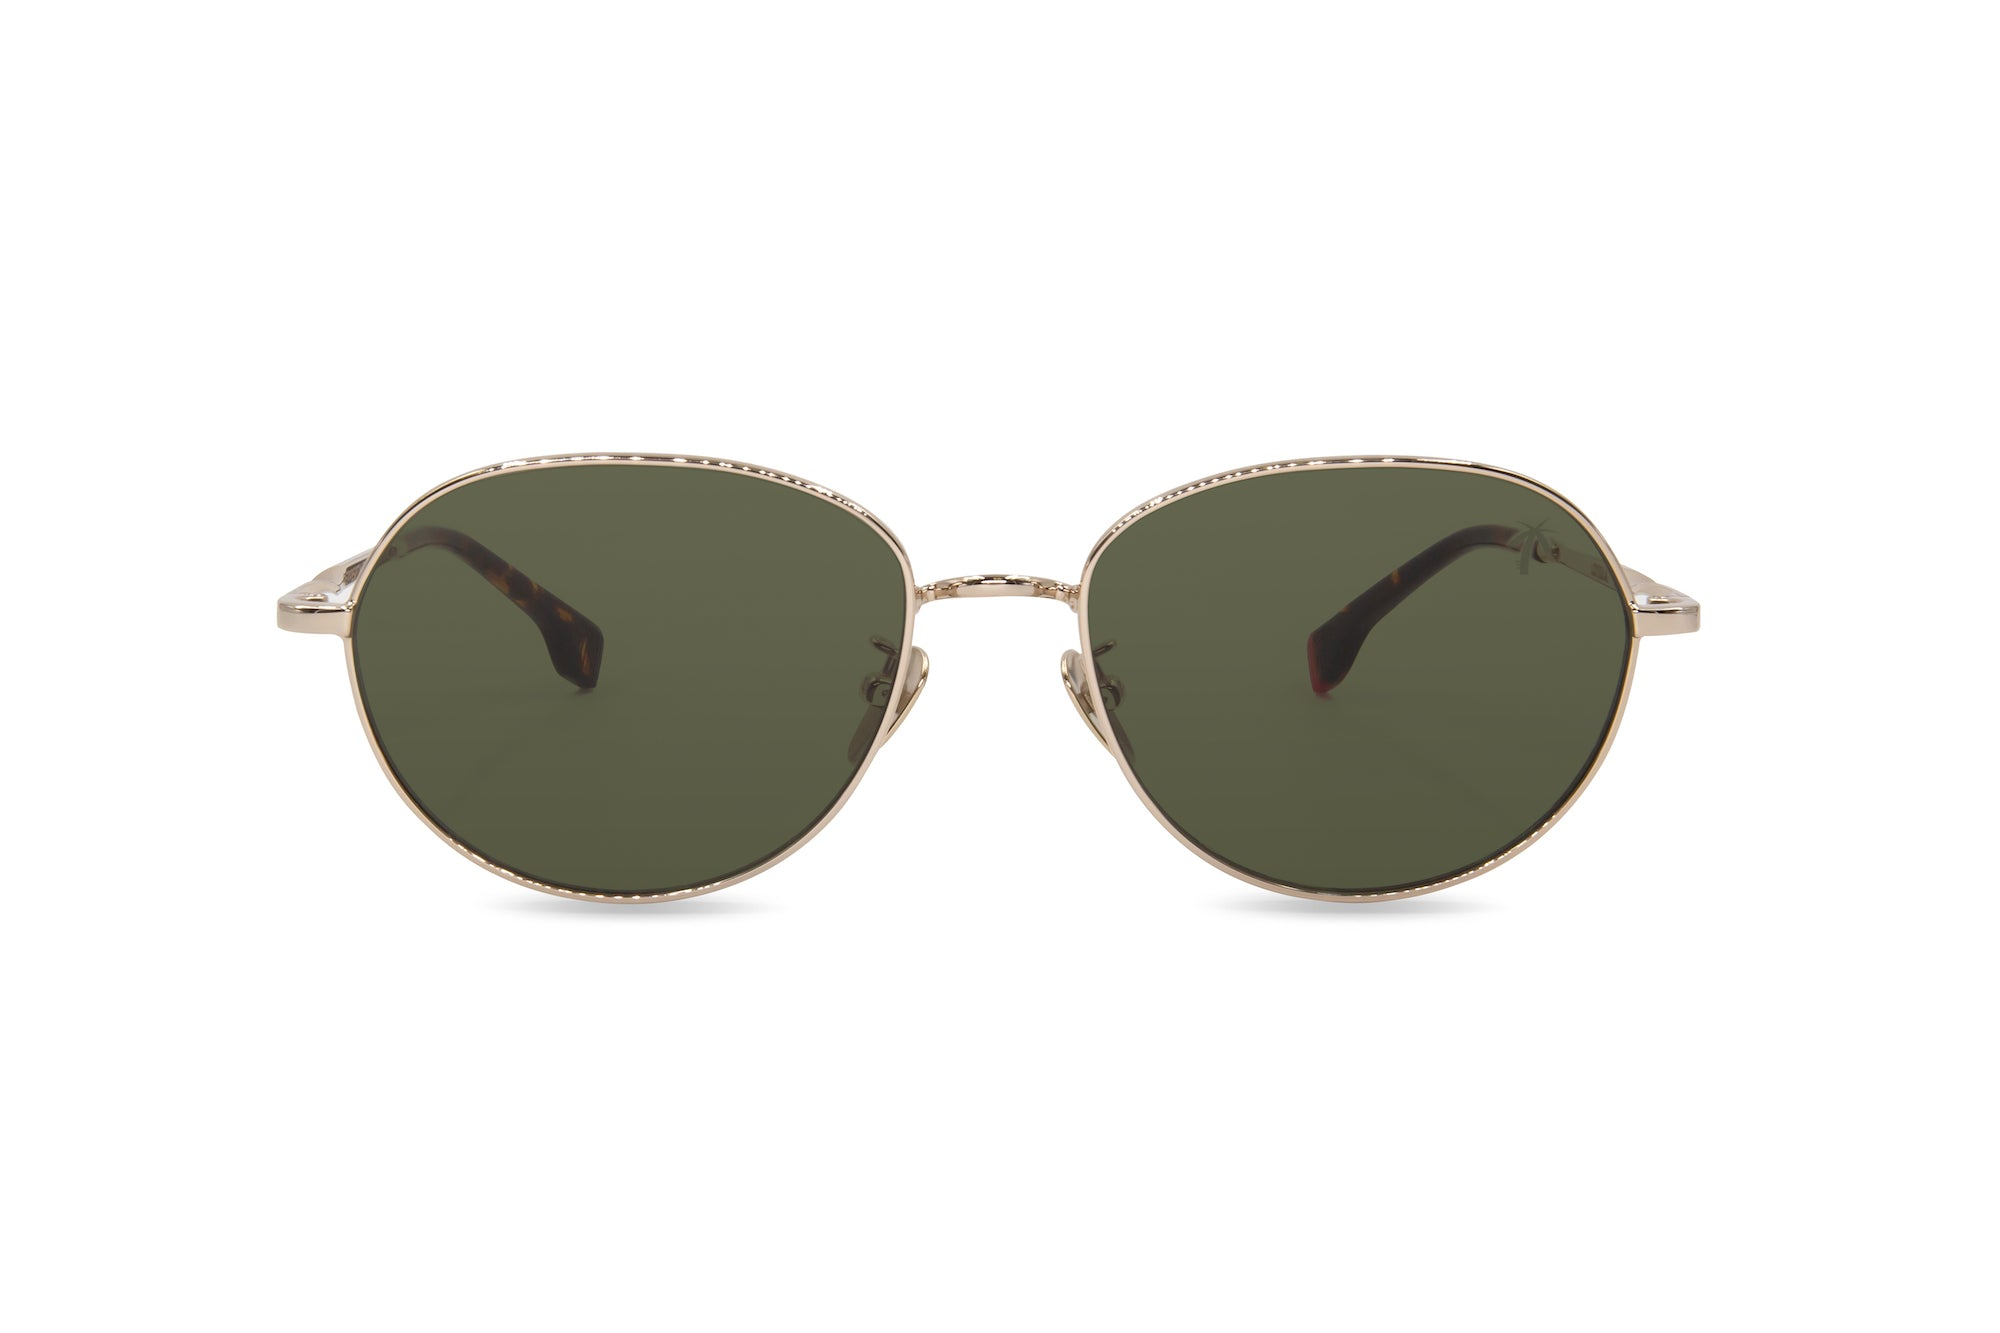 Loyola in Olive Green - Peppertint - Designer sunglasses